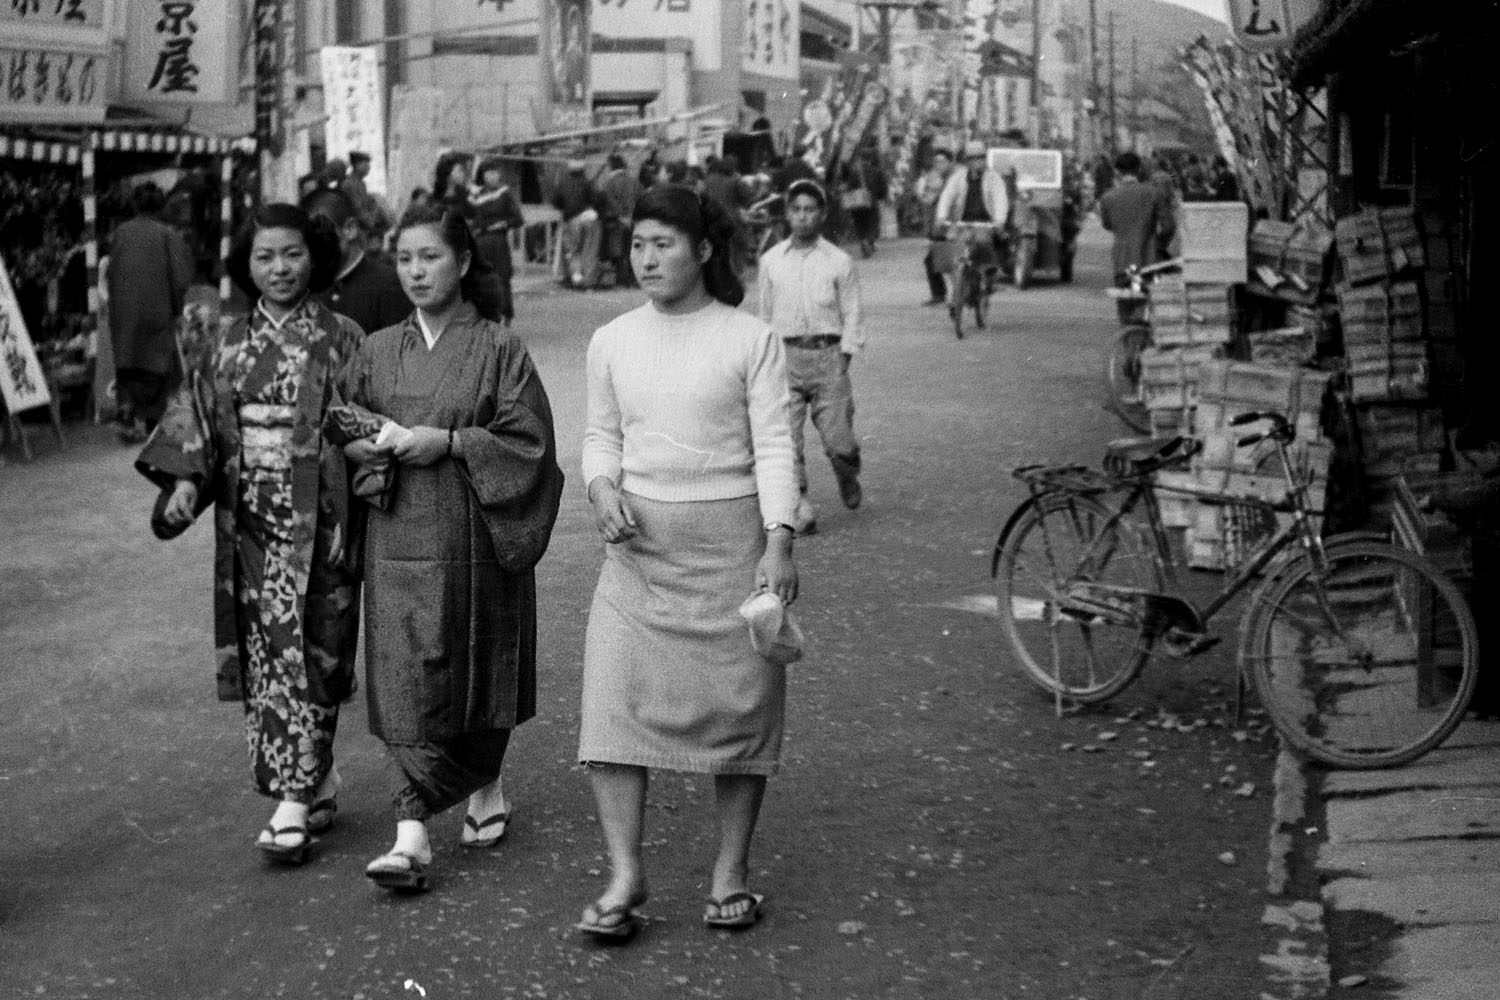 226- Sendai Street?, Two Eras of Dress